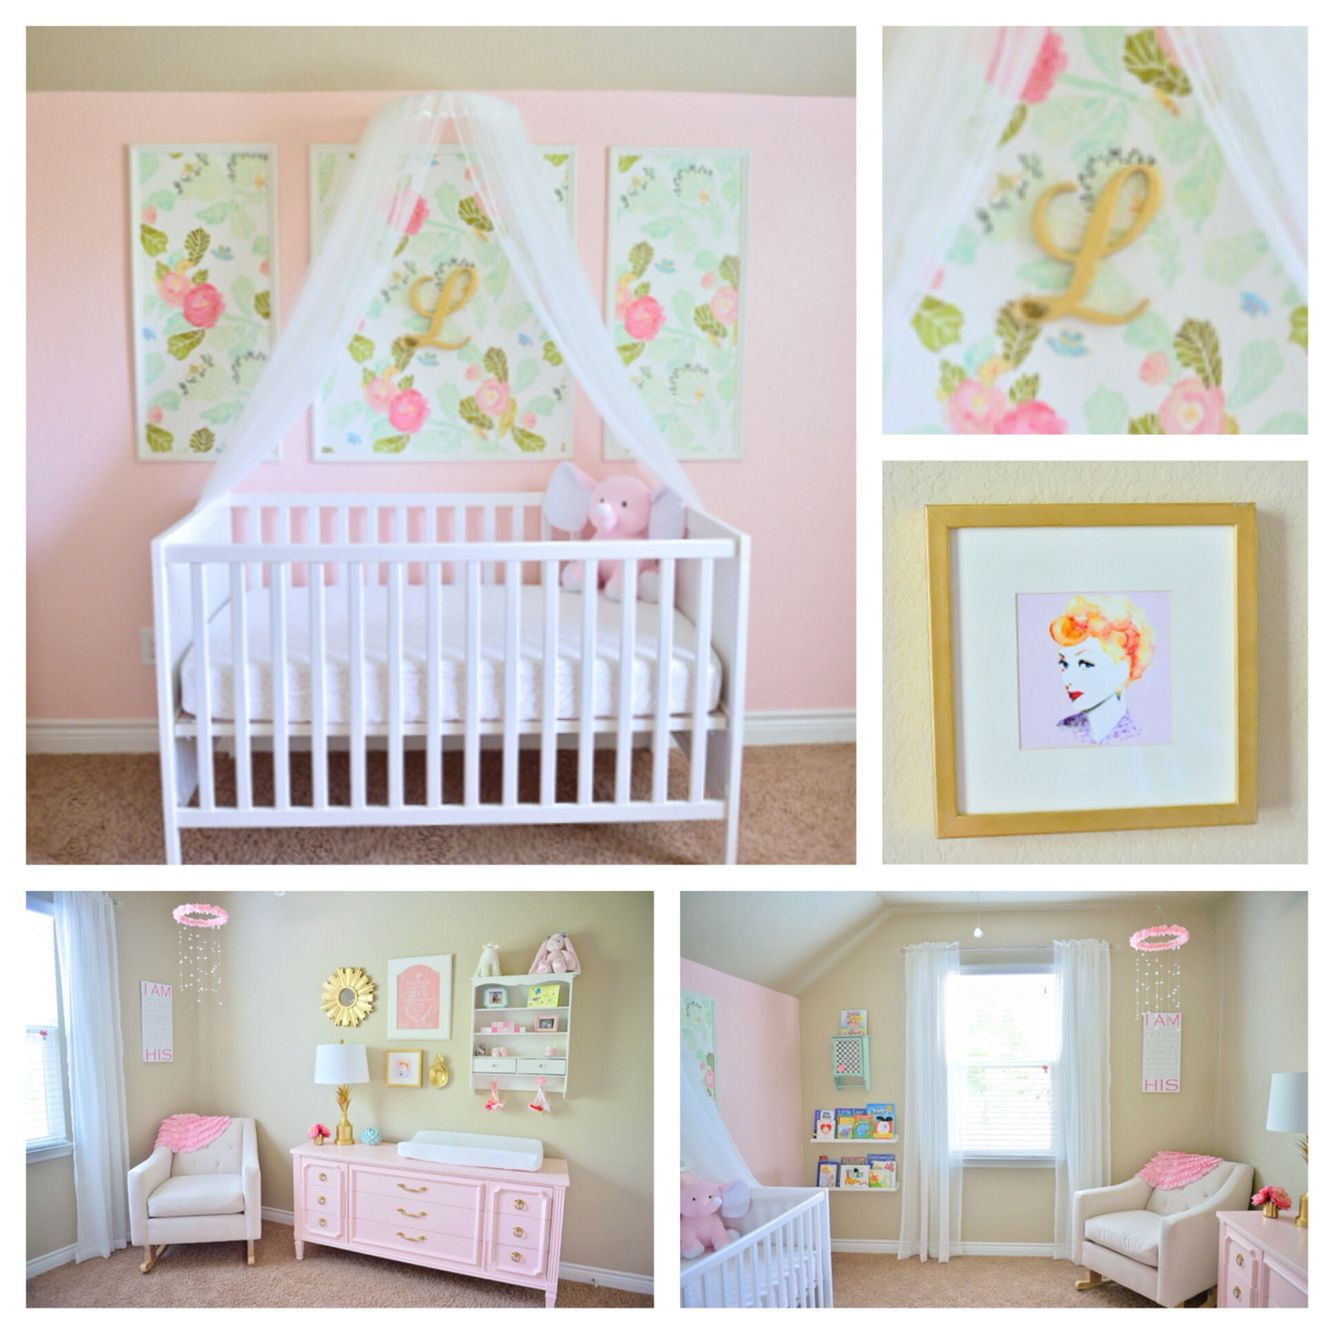 Lucy Victoria's pink floral nursery. Watercolor peony